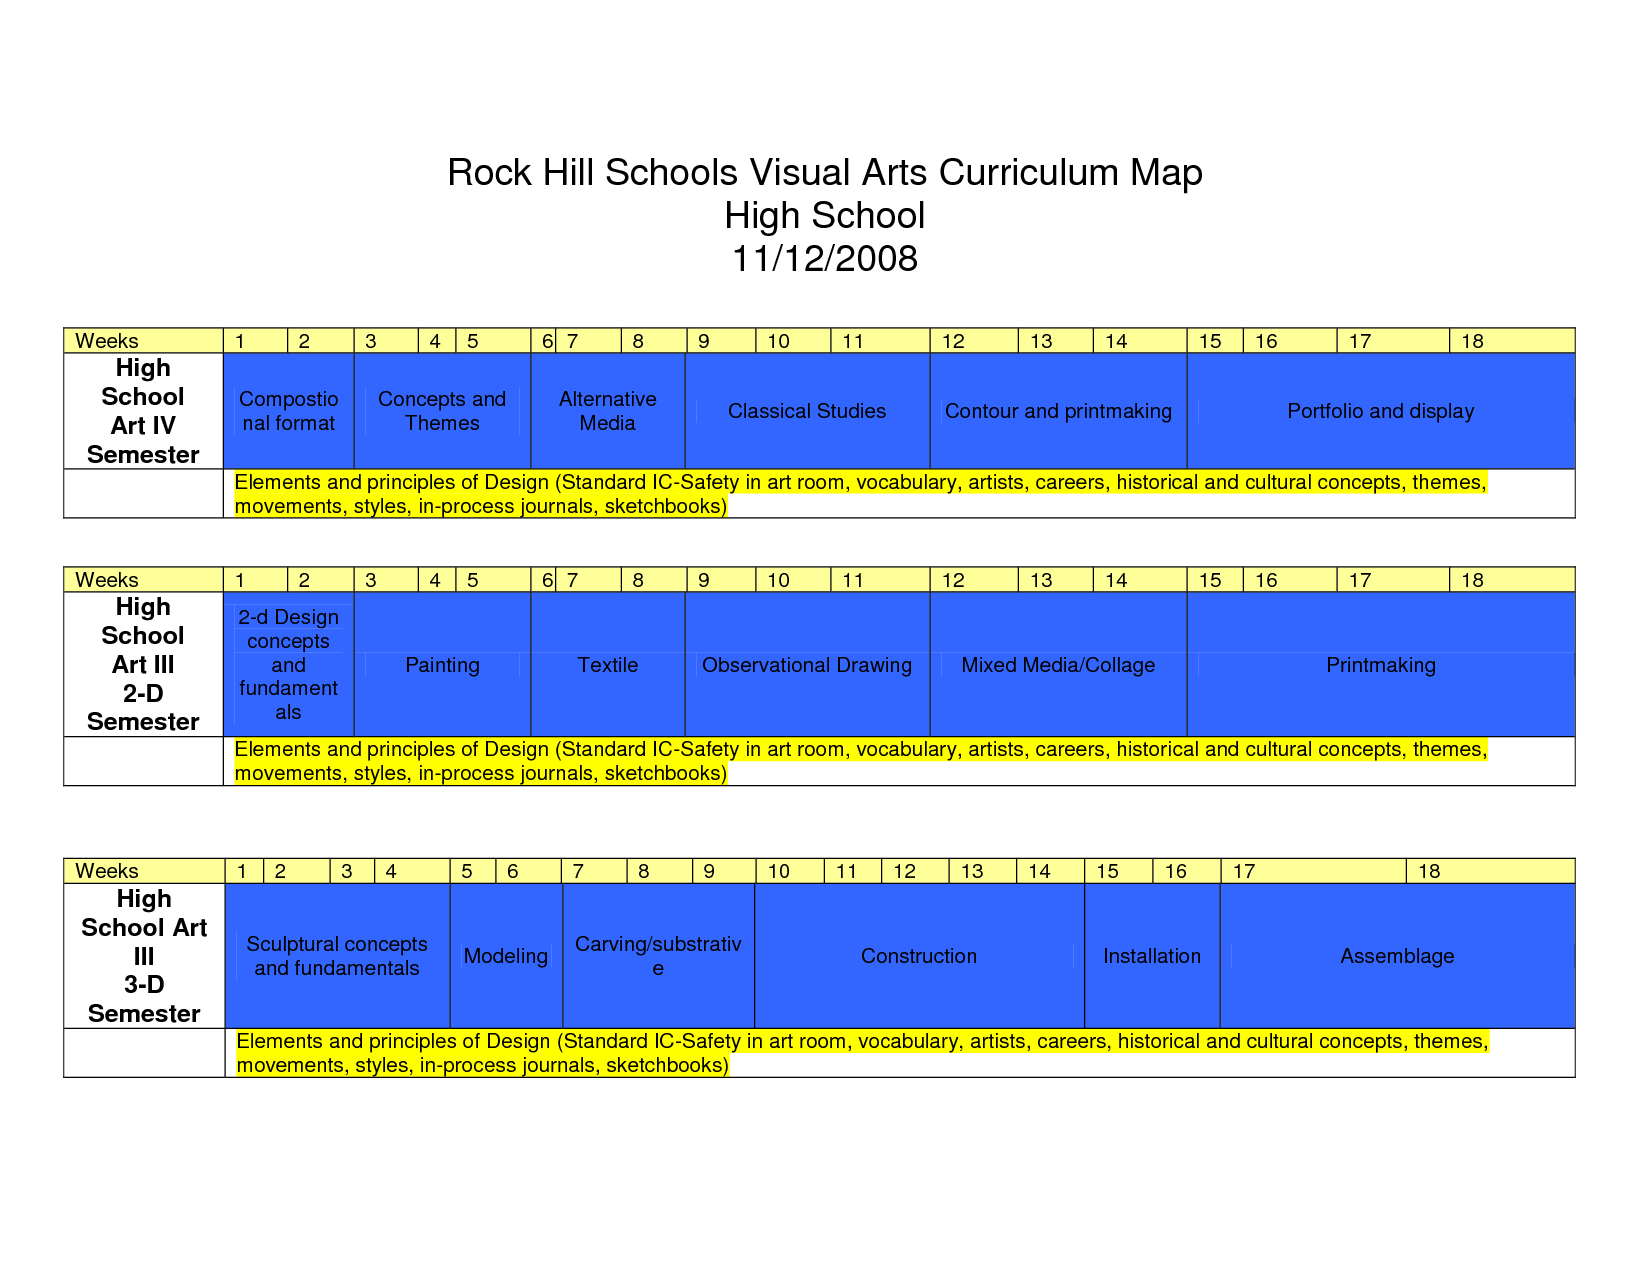 rock hill schools visual arts curriculum map high school high rock hill schools visual arts curriculum map high school